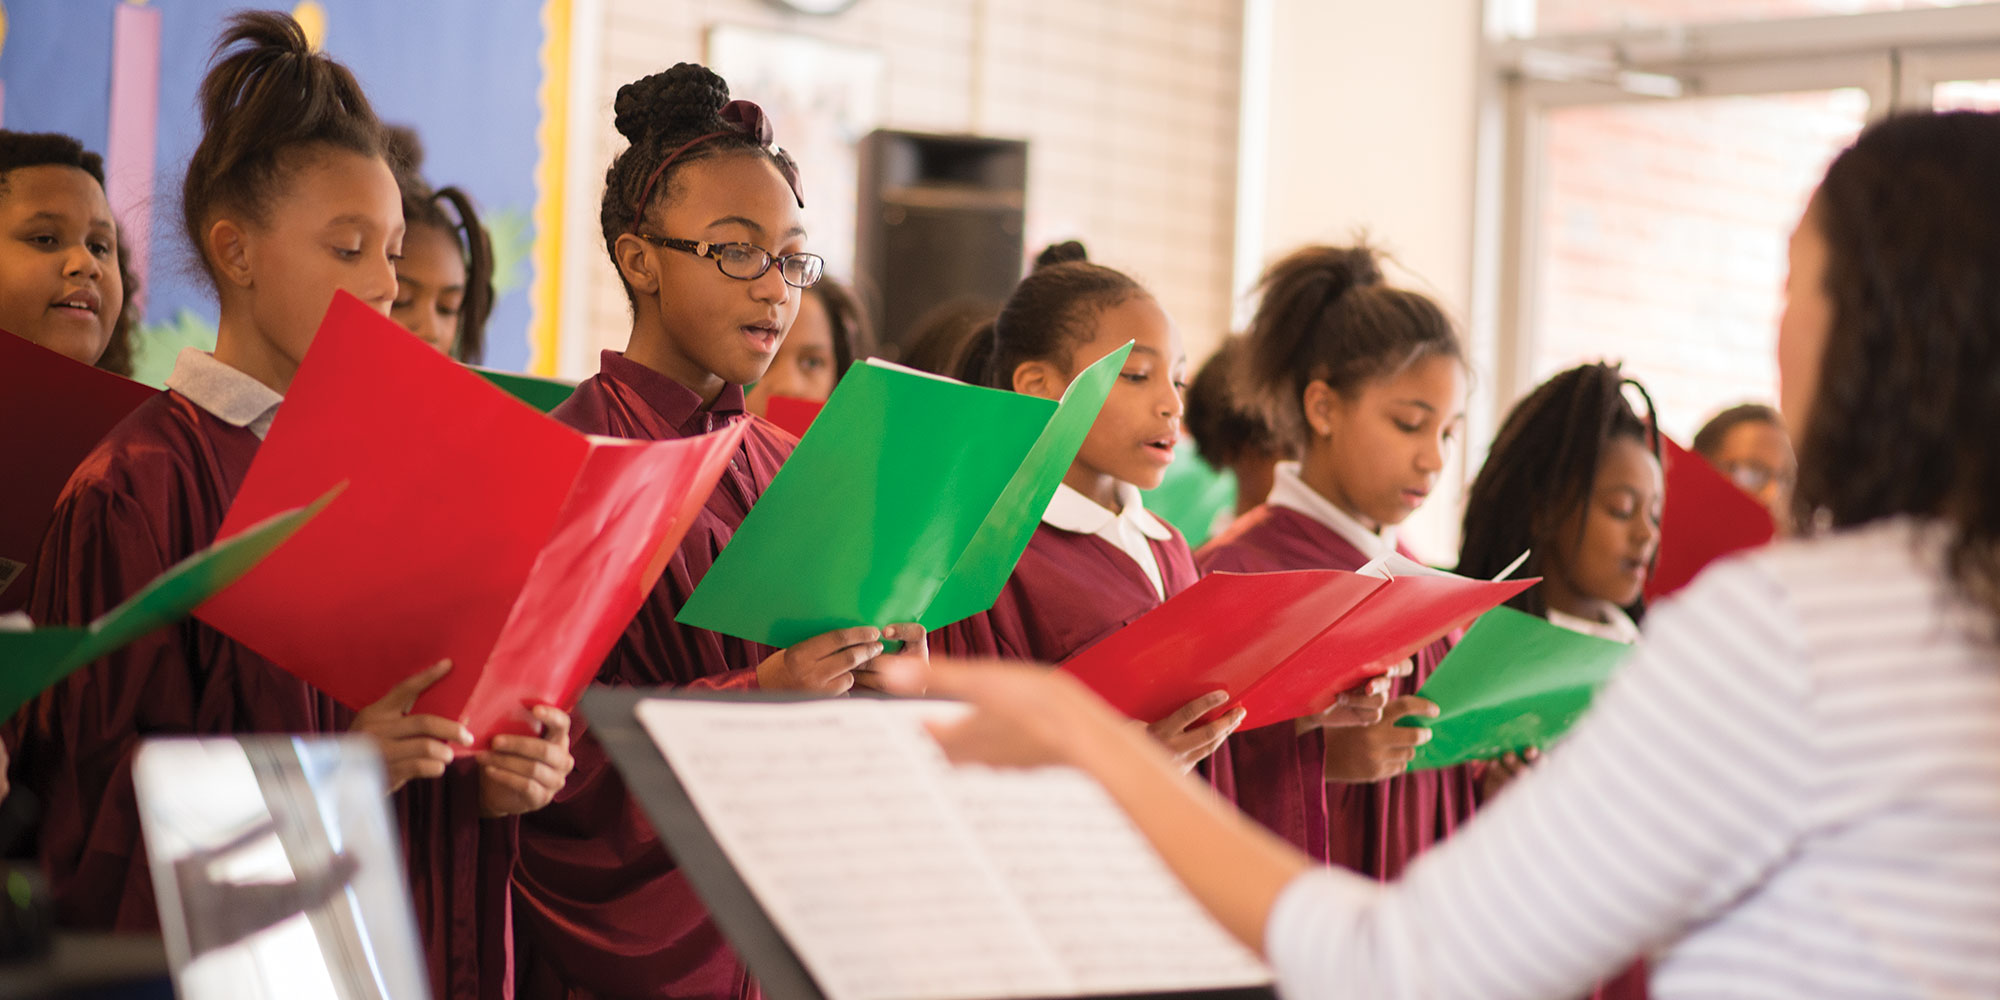 The Sister Thea Bowman Catholic Academy in Wilkinsburg educates children from pre-kindergarten through eighth grade. Here students perform for visitors to the school.